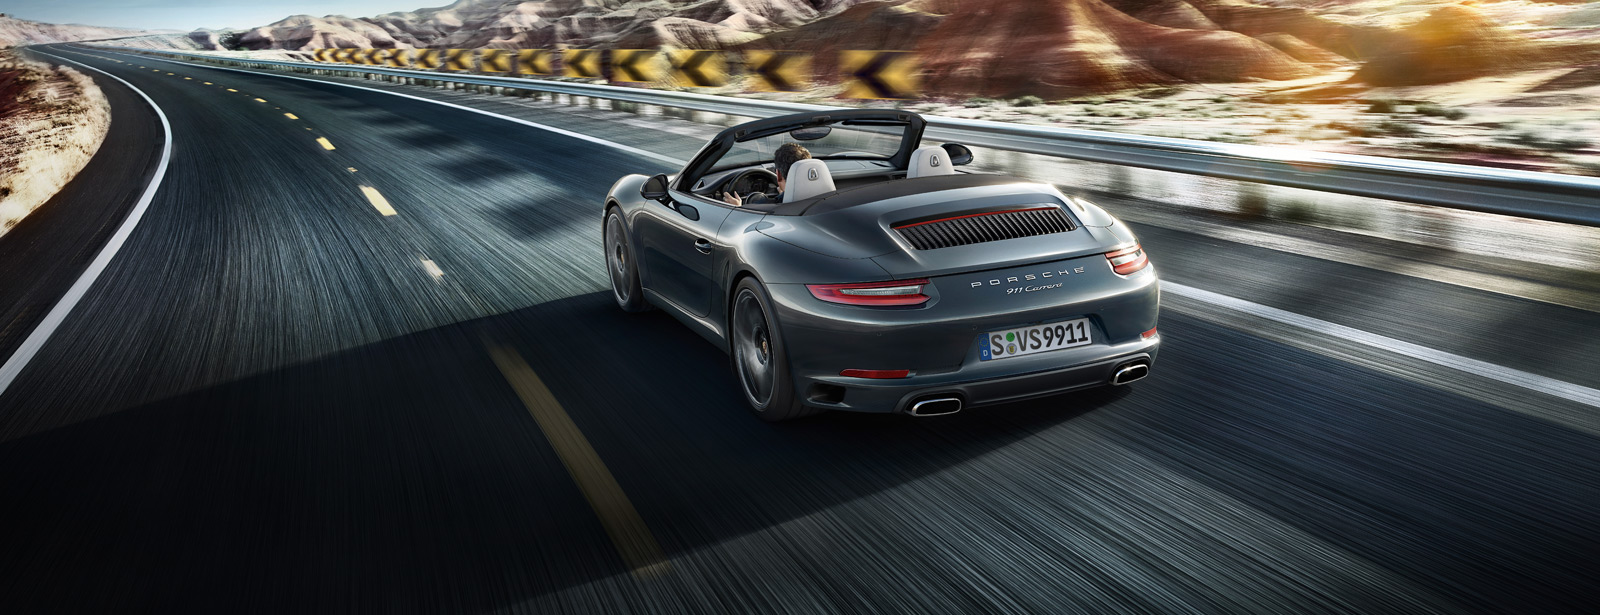 Porsche The new 911 Carrera Cabriolet